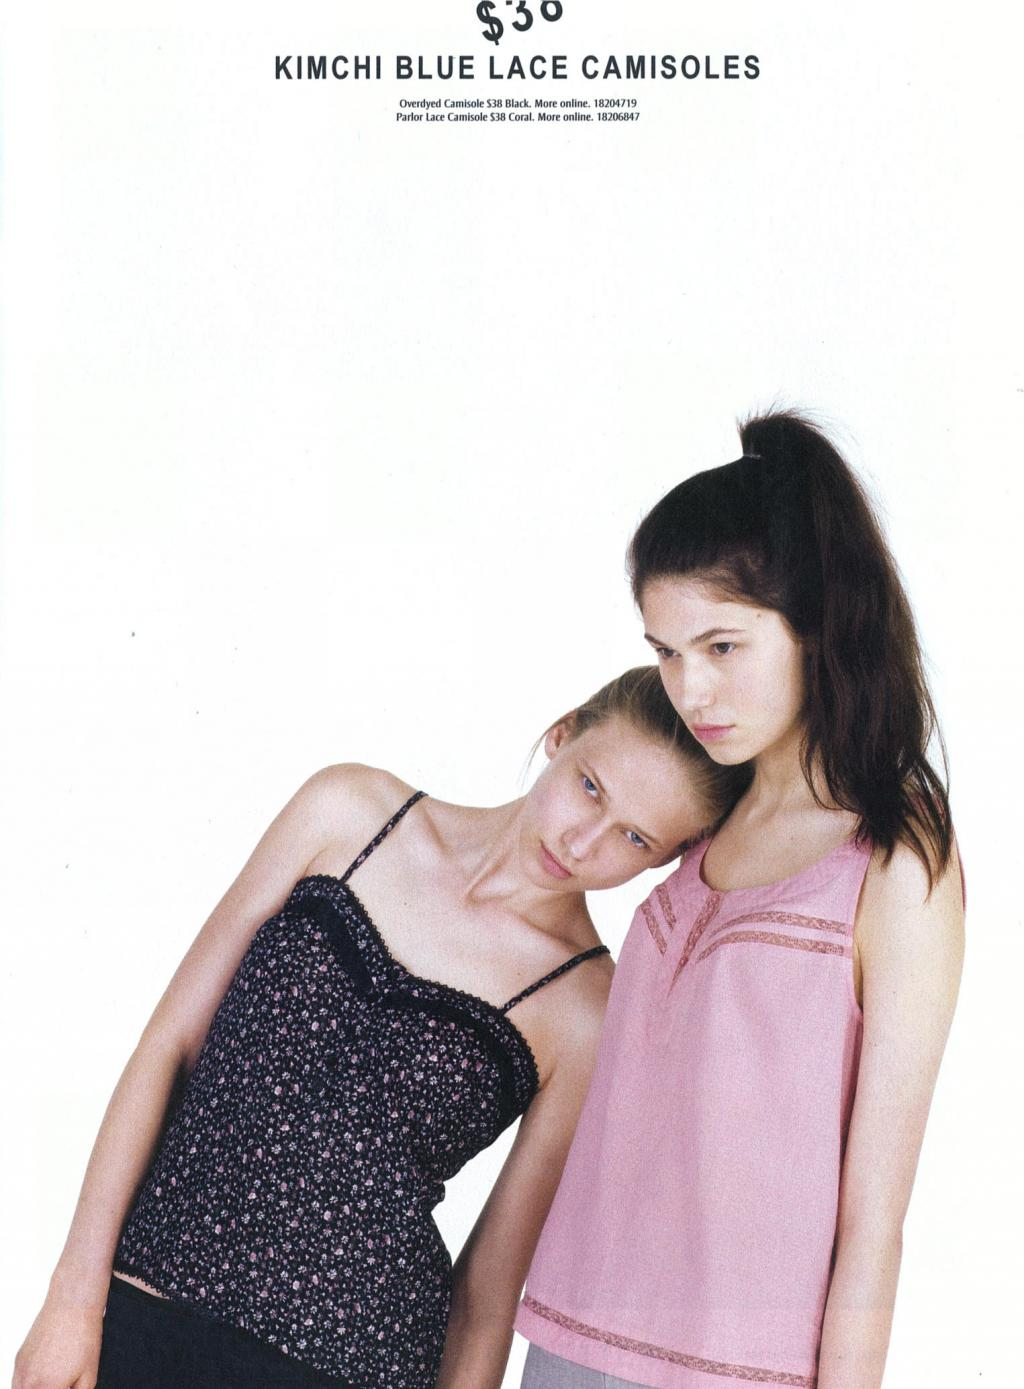 photo Urban Outfitters June 2010 Catalog